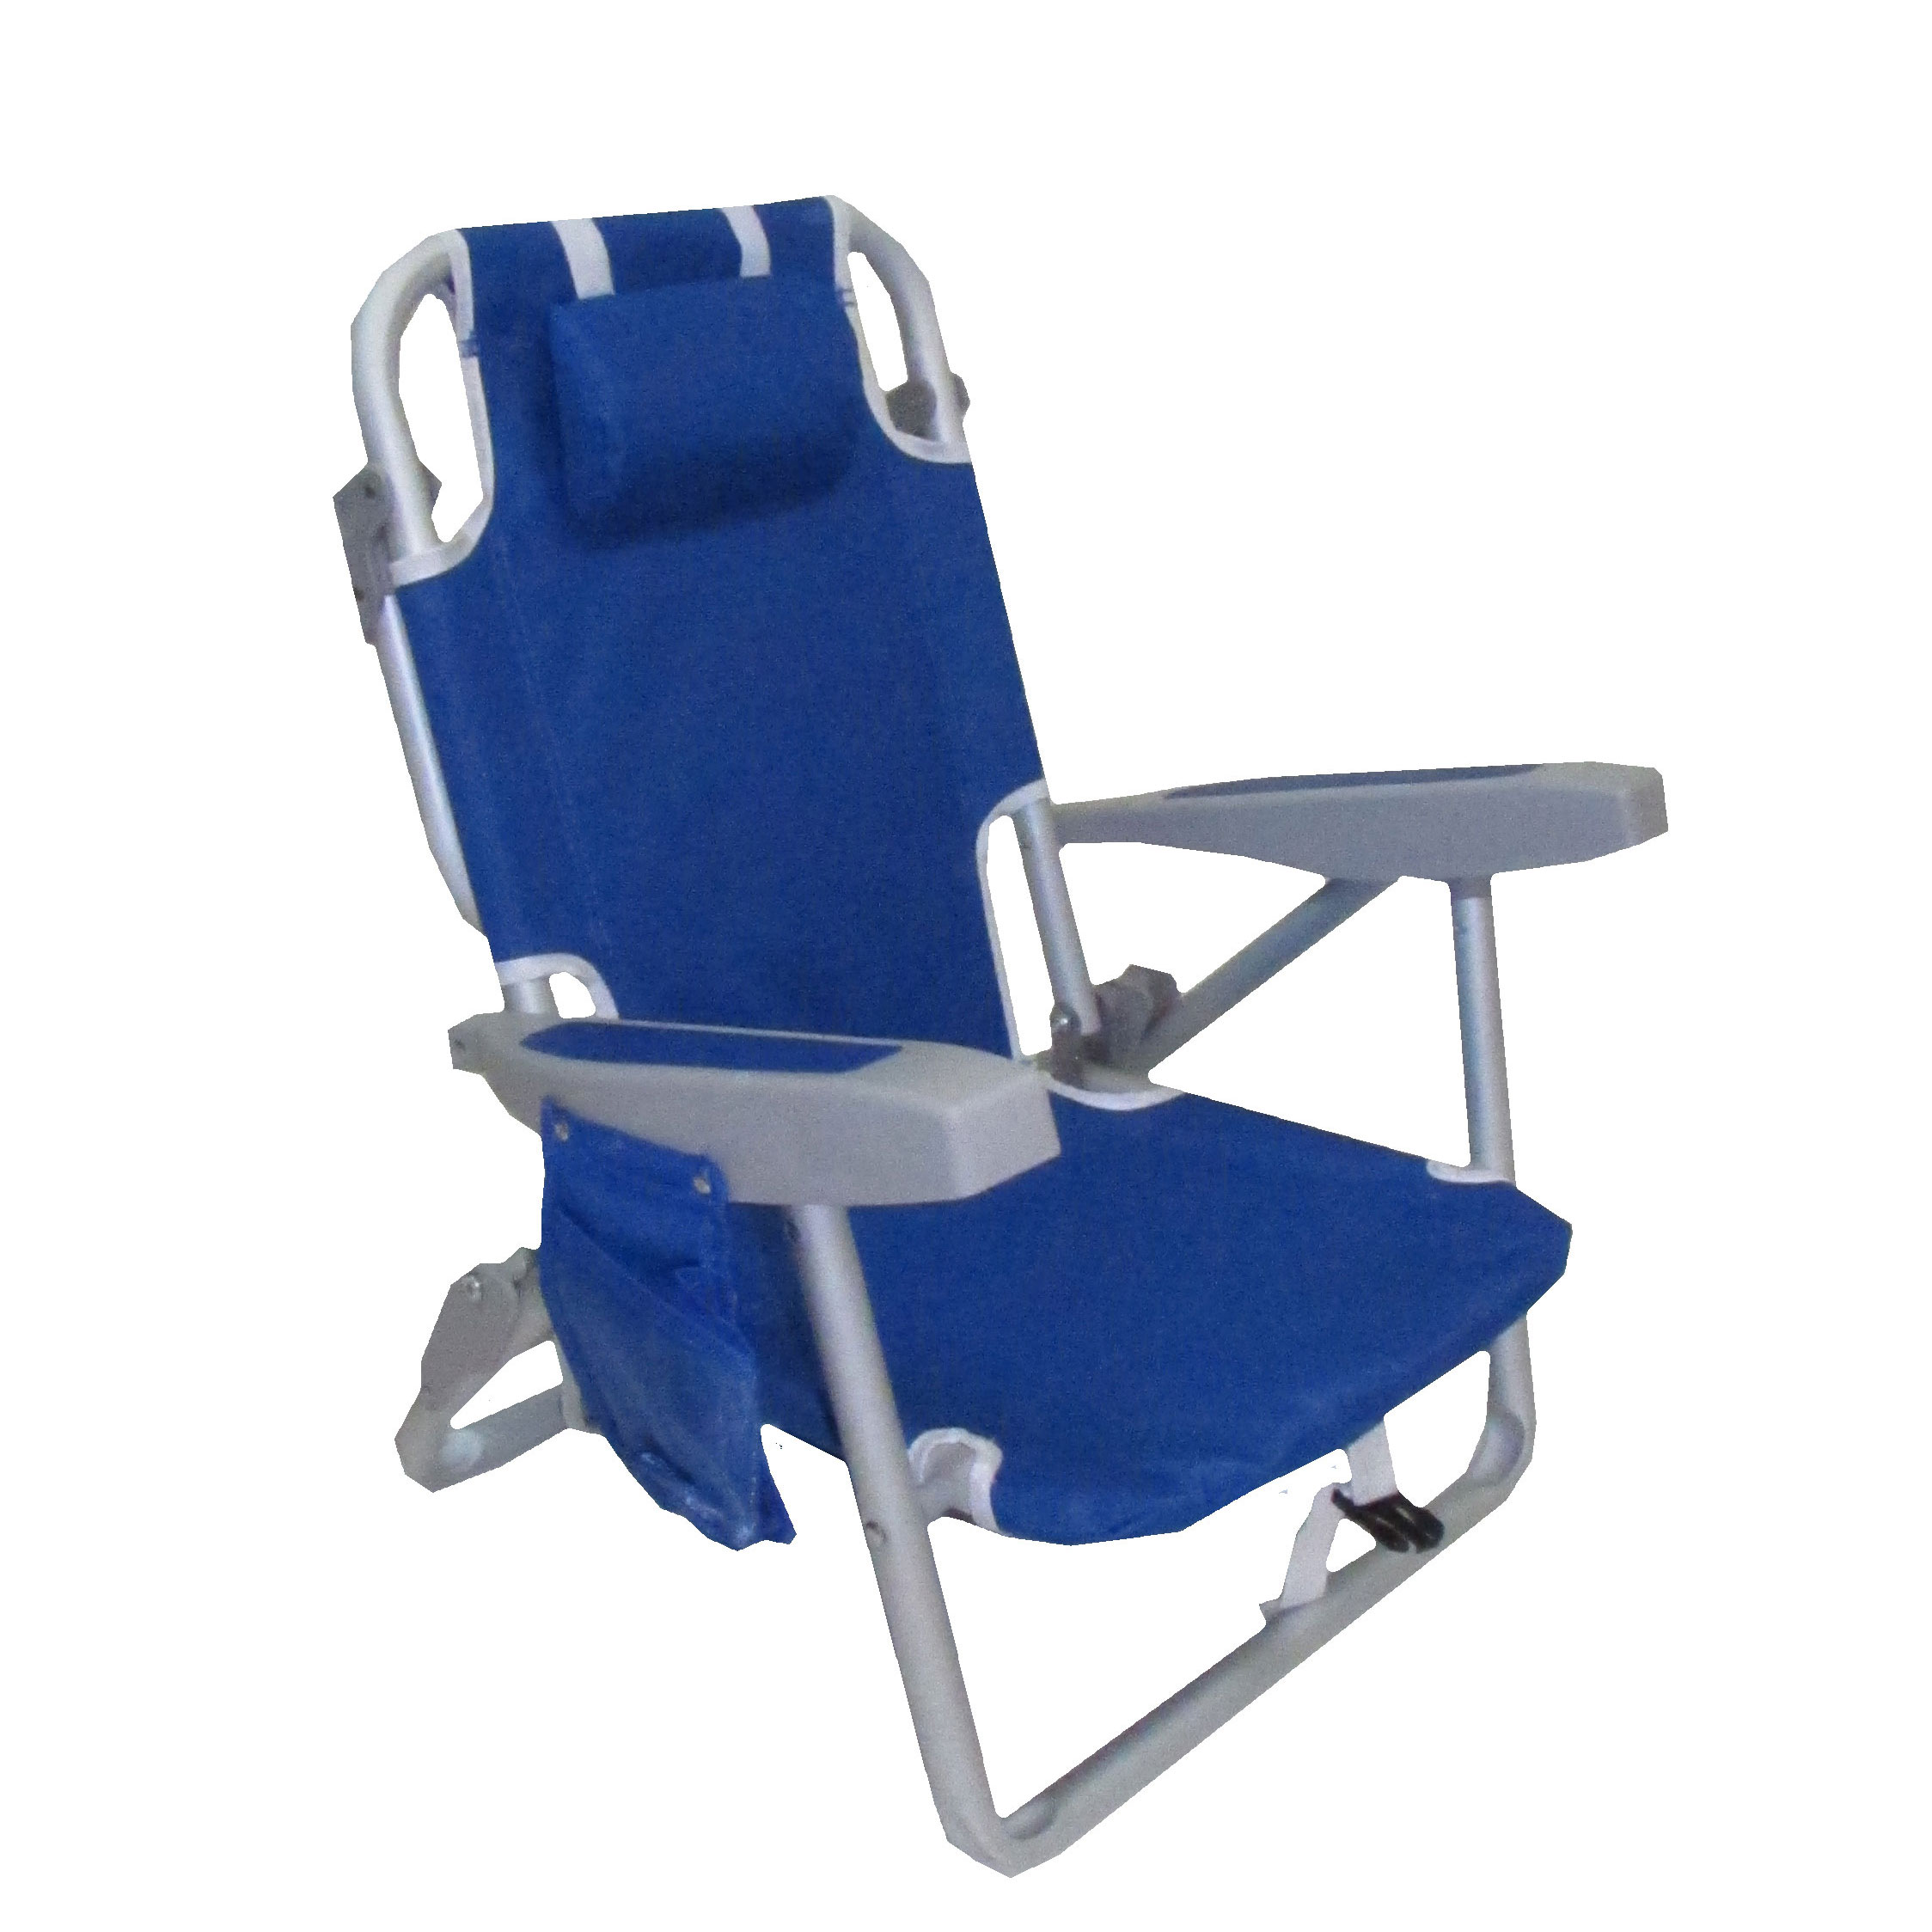 RIO Kid's Backpack Chair